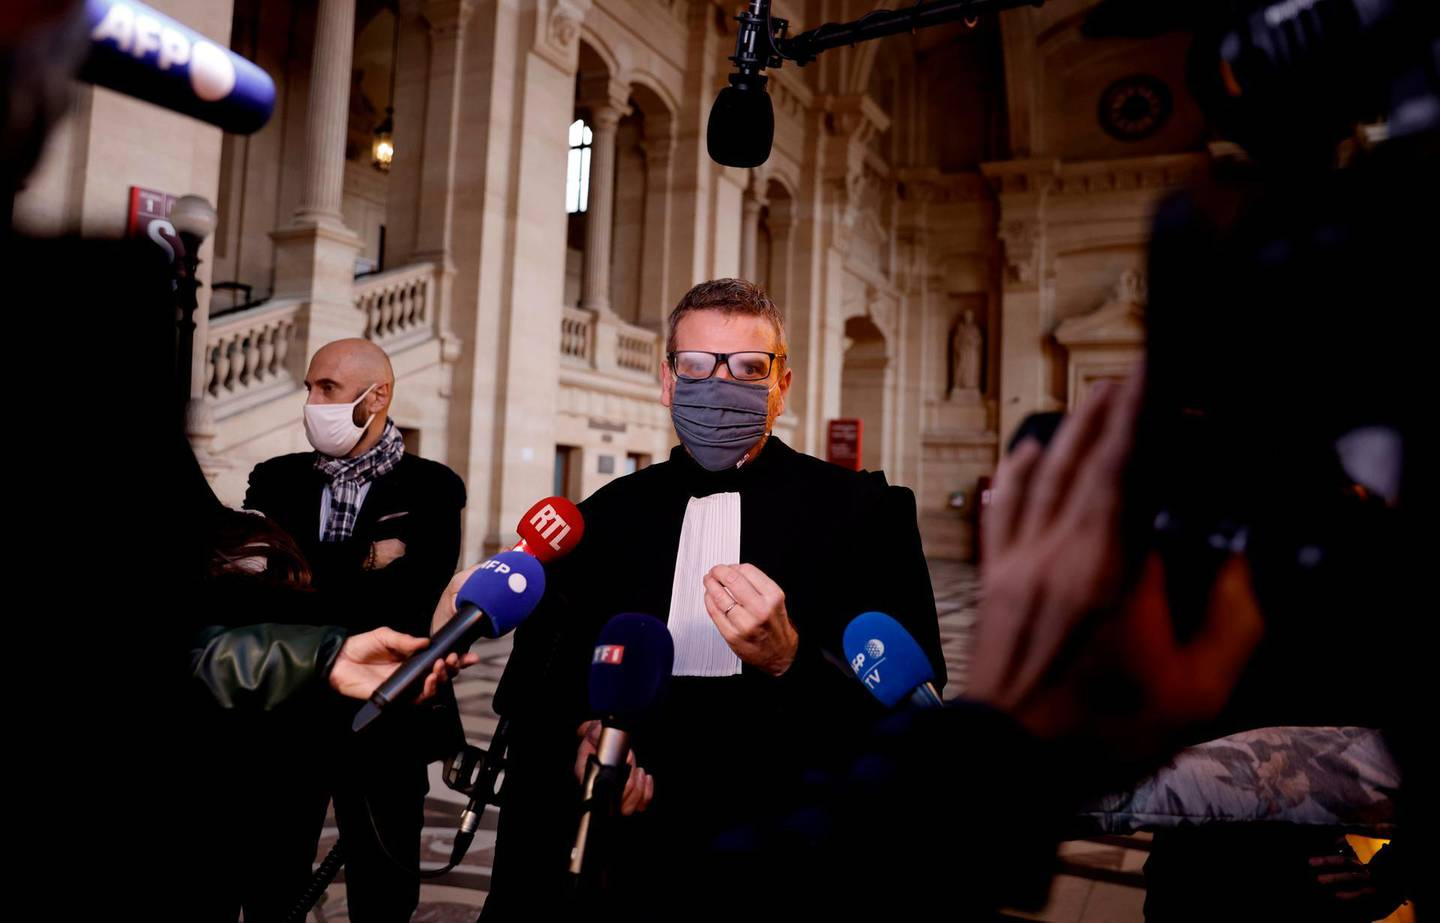 """French lawyer Thibault de Montbrial, who is representing US soldiers who foiled a terror attack on an Amsterdam-Paris train in 2015, speaks to journalists at The Paris Courthouse in Paris on November 16, 2020, before the start of the trial of a man accused of the attack. Ayoub El Khazzani was tackled by passengers after emerging heavily armed from a toilet on a Thalys Amsterdam-Paris high-speed train on August 21, 2015. The 31-year-old, who joined the Islamic State group in Syria in May 2015, is charged with """"attempted terrorist murder"""" and will be joined in the dock at the special anti-terror court by three other men accused of helping him. The passengers included two off-duty US servicemen, Spencer Stone and Alek Skarlatos, whose actions were later made into a film by Hollywood director Clint Eastwood. The trial is scheduled to last until December 17. / AFP / THOMAS COEX"""